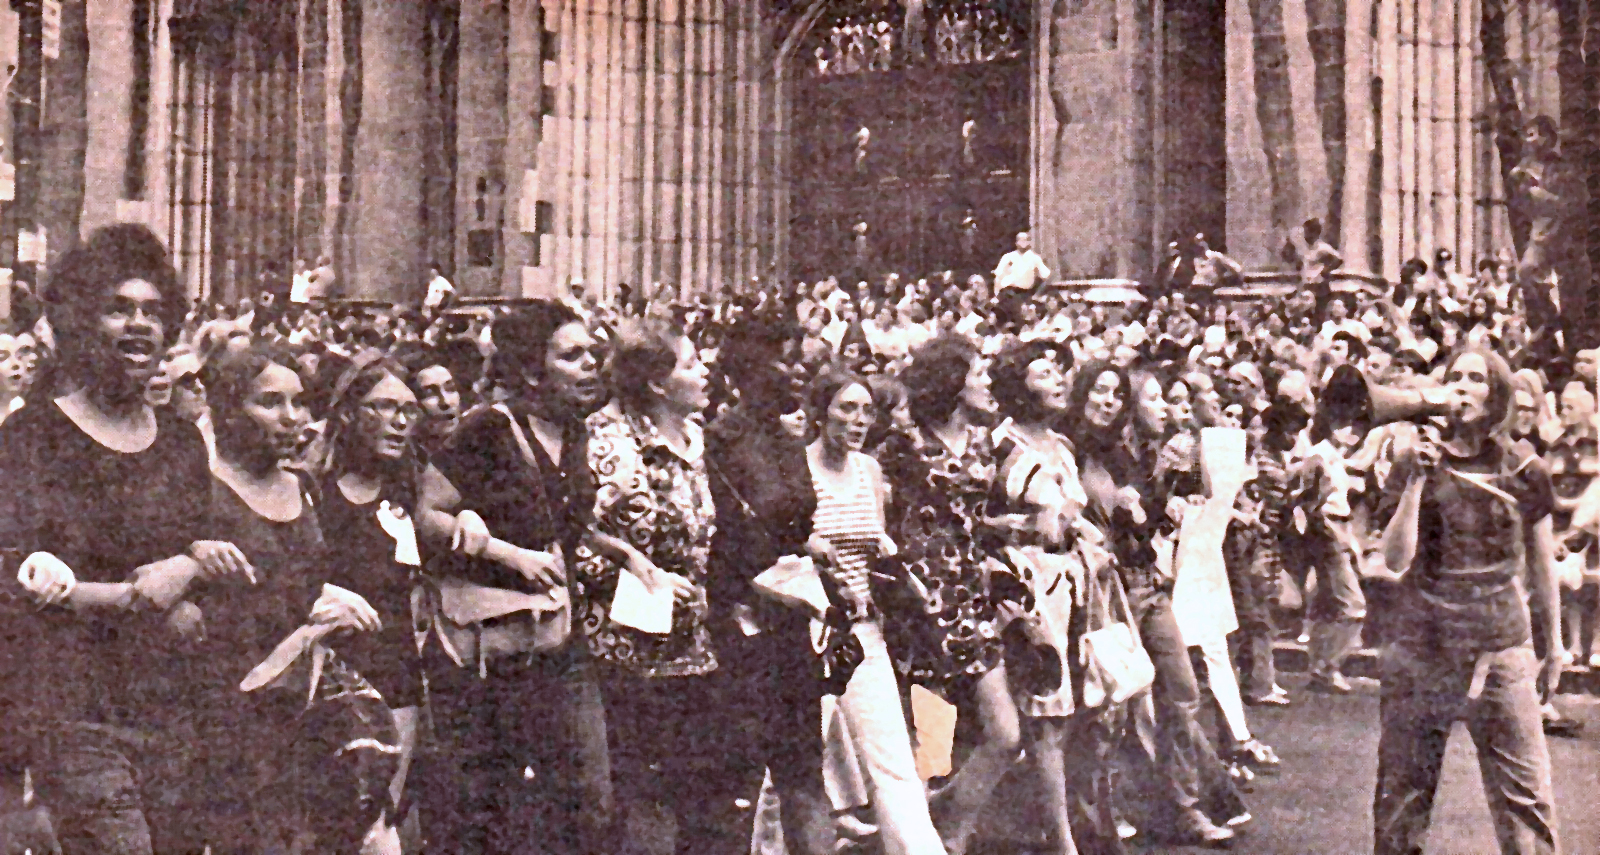 August 26, 1970 – Women's Strike For Equality